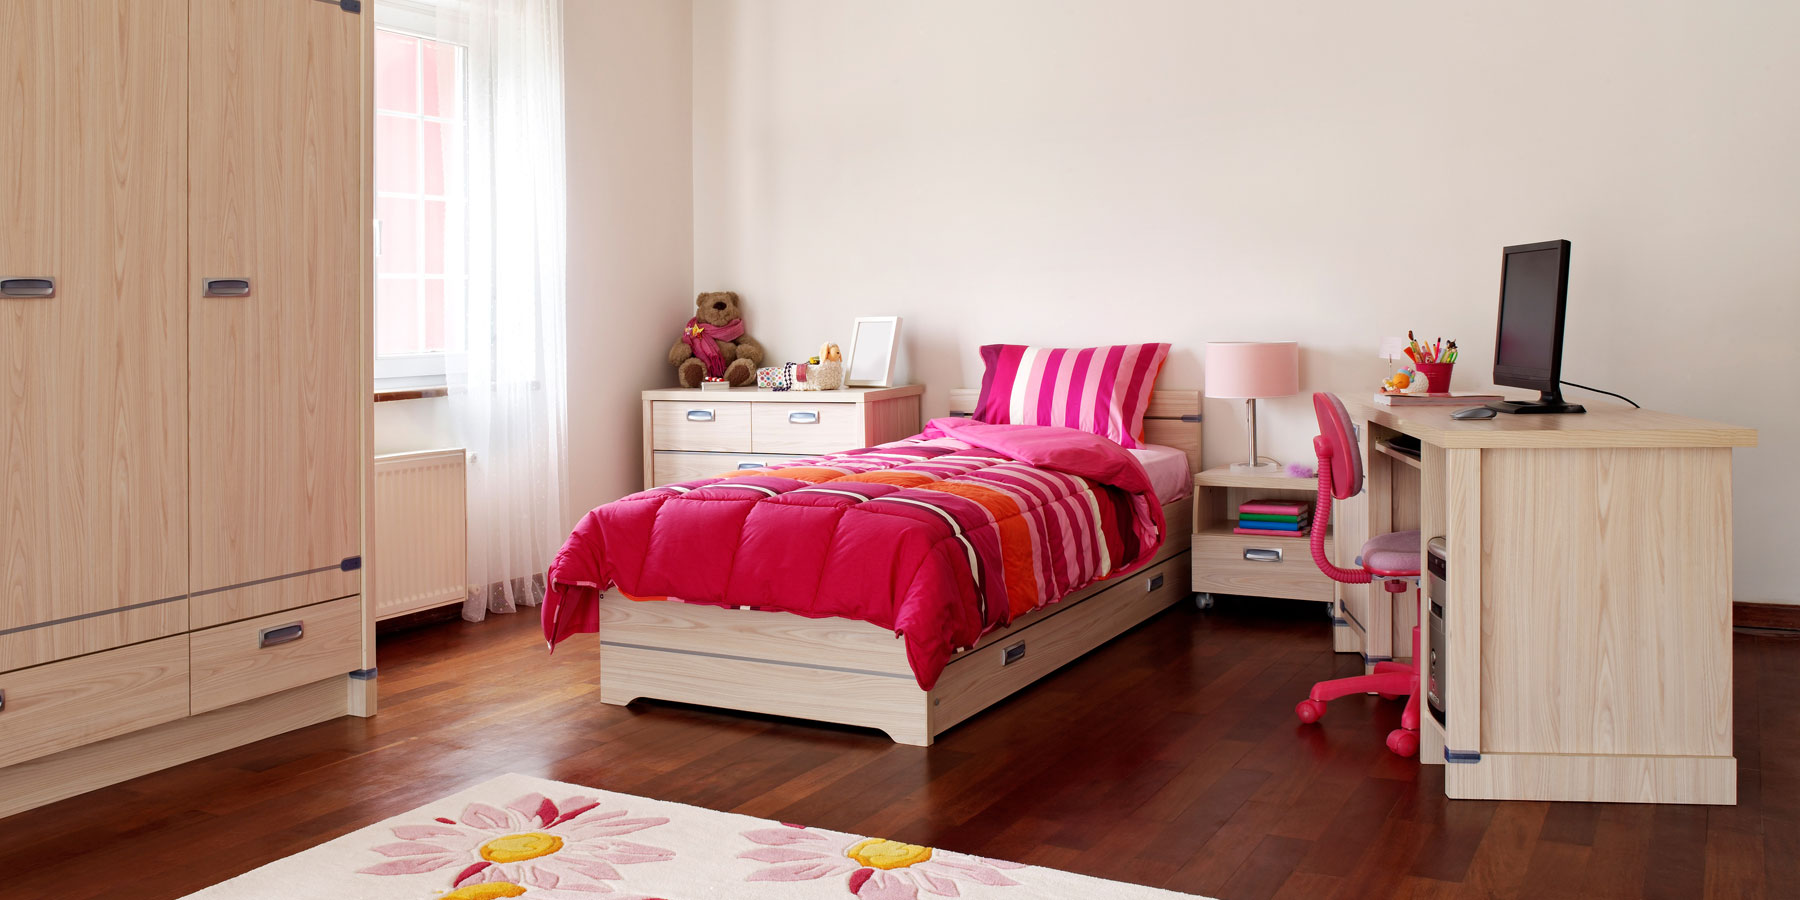 Interesting Twin Long Beds By Design Beds By Design Michigan Beds By Design Sioux Falls Sd houzz-02 Beds By Design